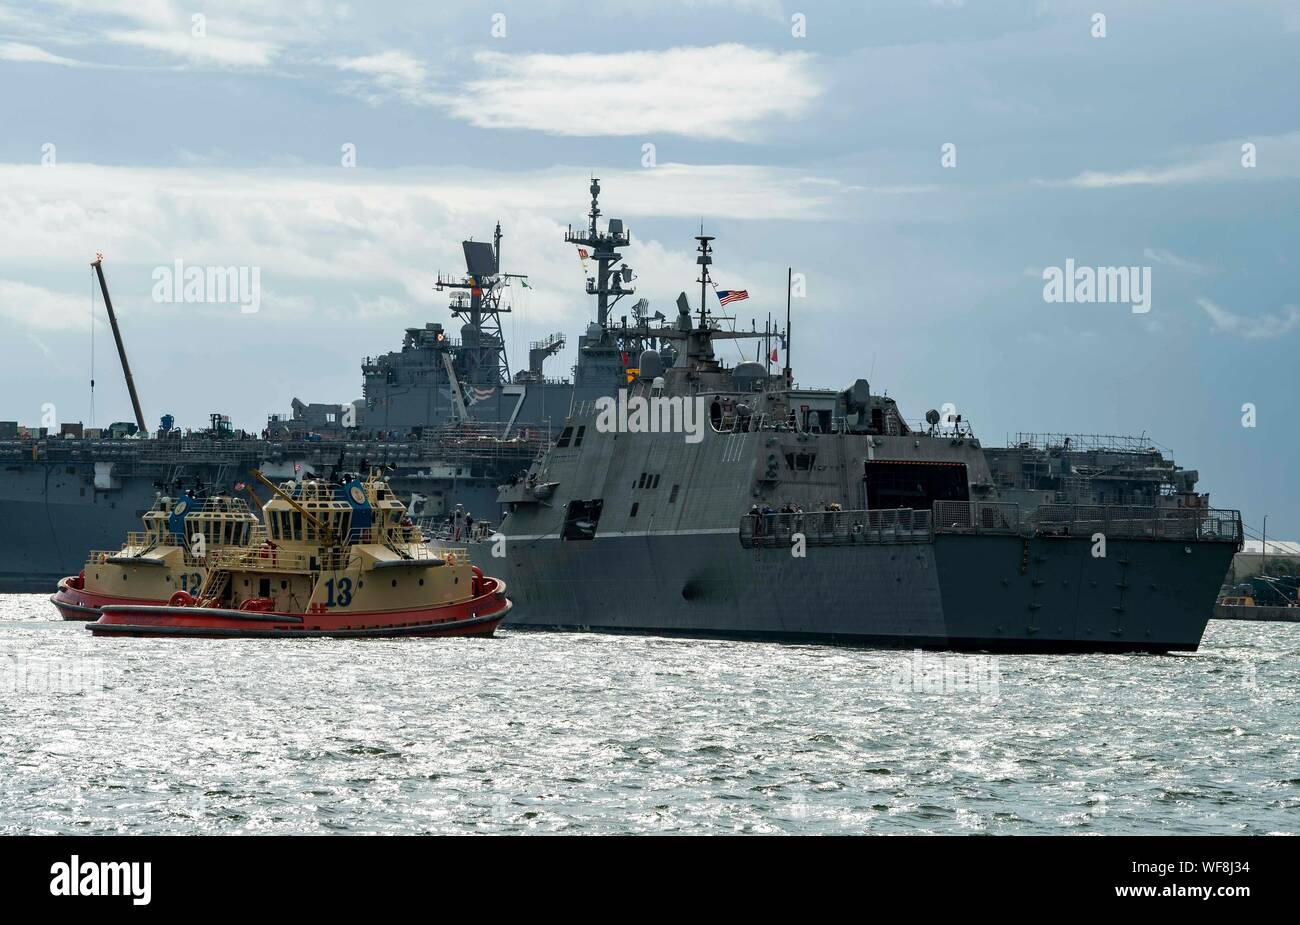 190830-N-QI061-2189  JACKSONVILLE, Fla. (Aug. 30, 2019) The Freedom-class variant littoral combat ship USS Billings (LCS 15) gets underway from Naval Station Mayport as Commander, U.S. 4th Fleet orders all U.S. Navy ships homeported in the area to sortie ahead of Hurricane Dorian, which is forecasted to bring high winds and heavy rain to the East Coast. Ships are being directed to areas in the Atlantic where they are best postured for storm avoidance. (U.S. Navy photo by Mass Communication Specialist 3rd Class Nathan T. Beard/Released) Stock Photo